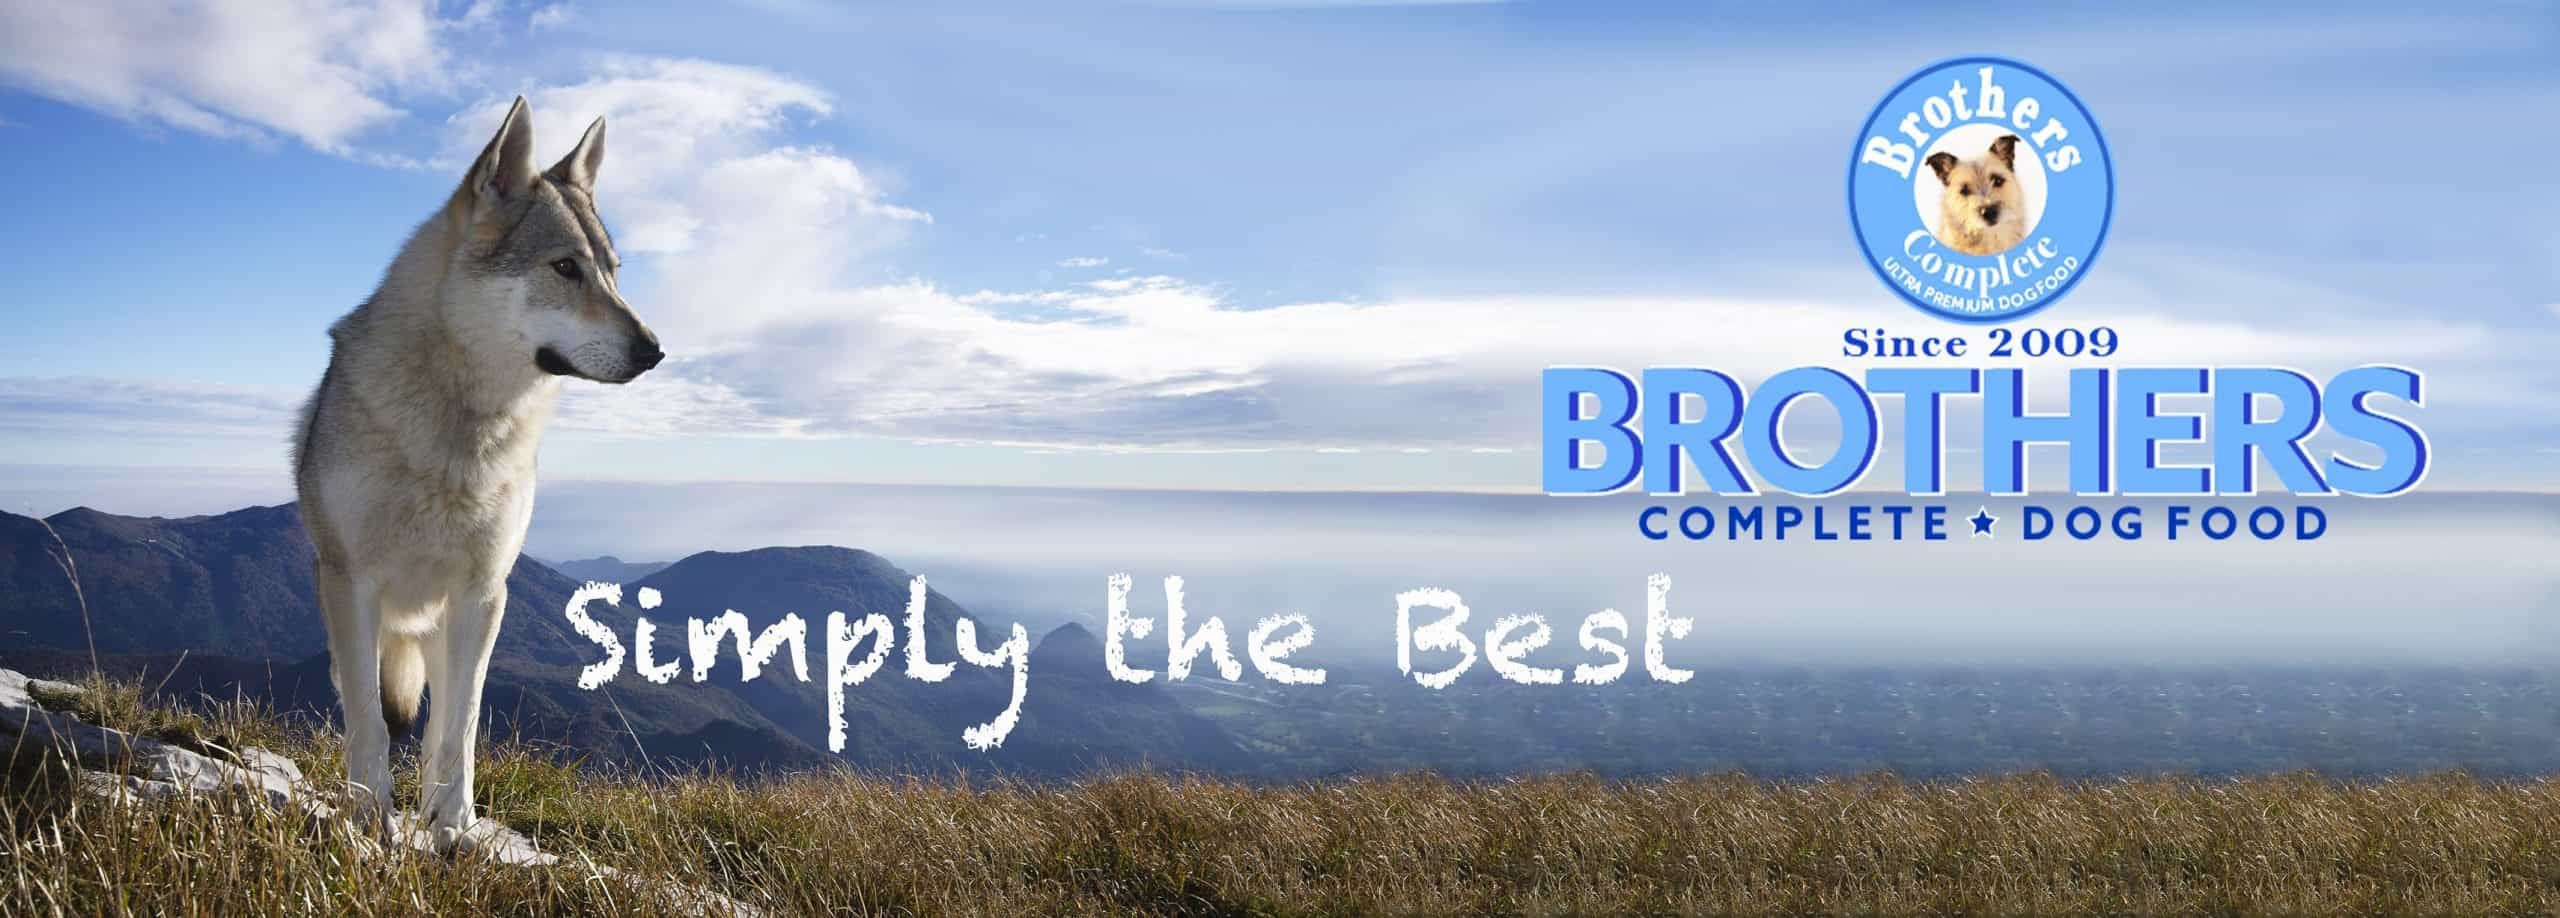 brothers complete dog food reviews